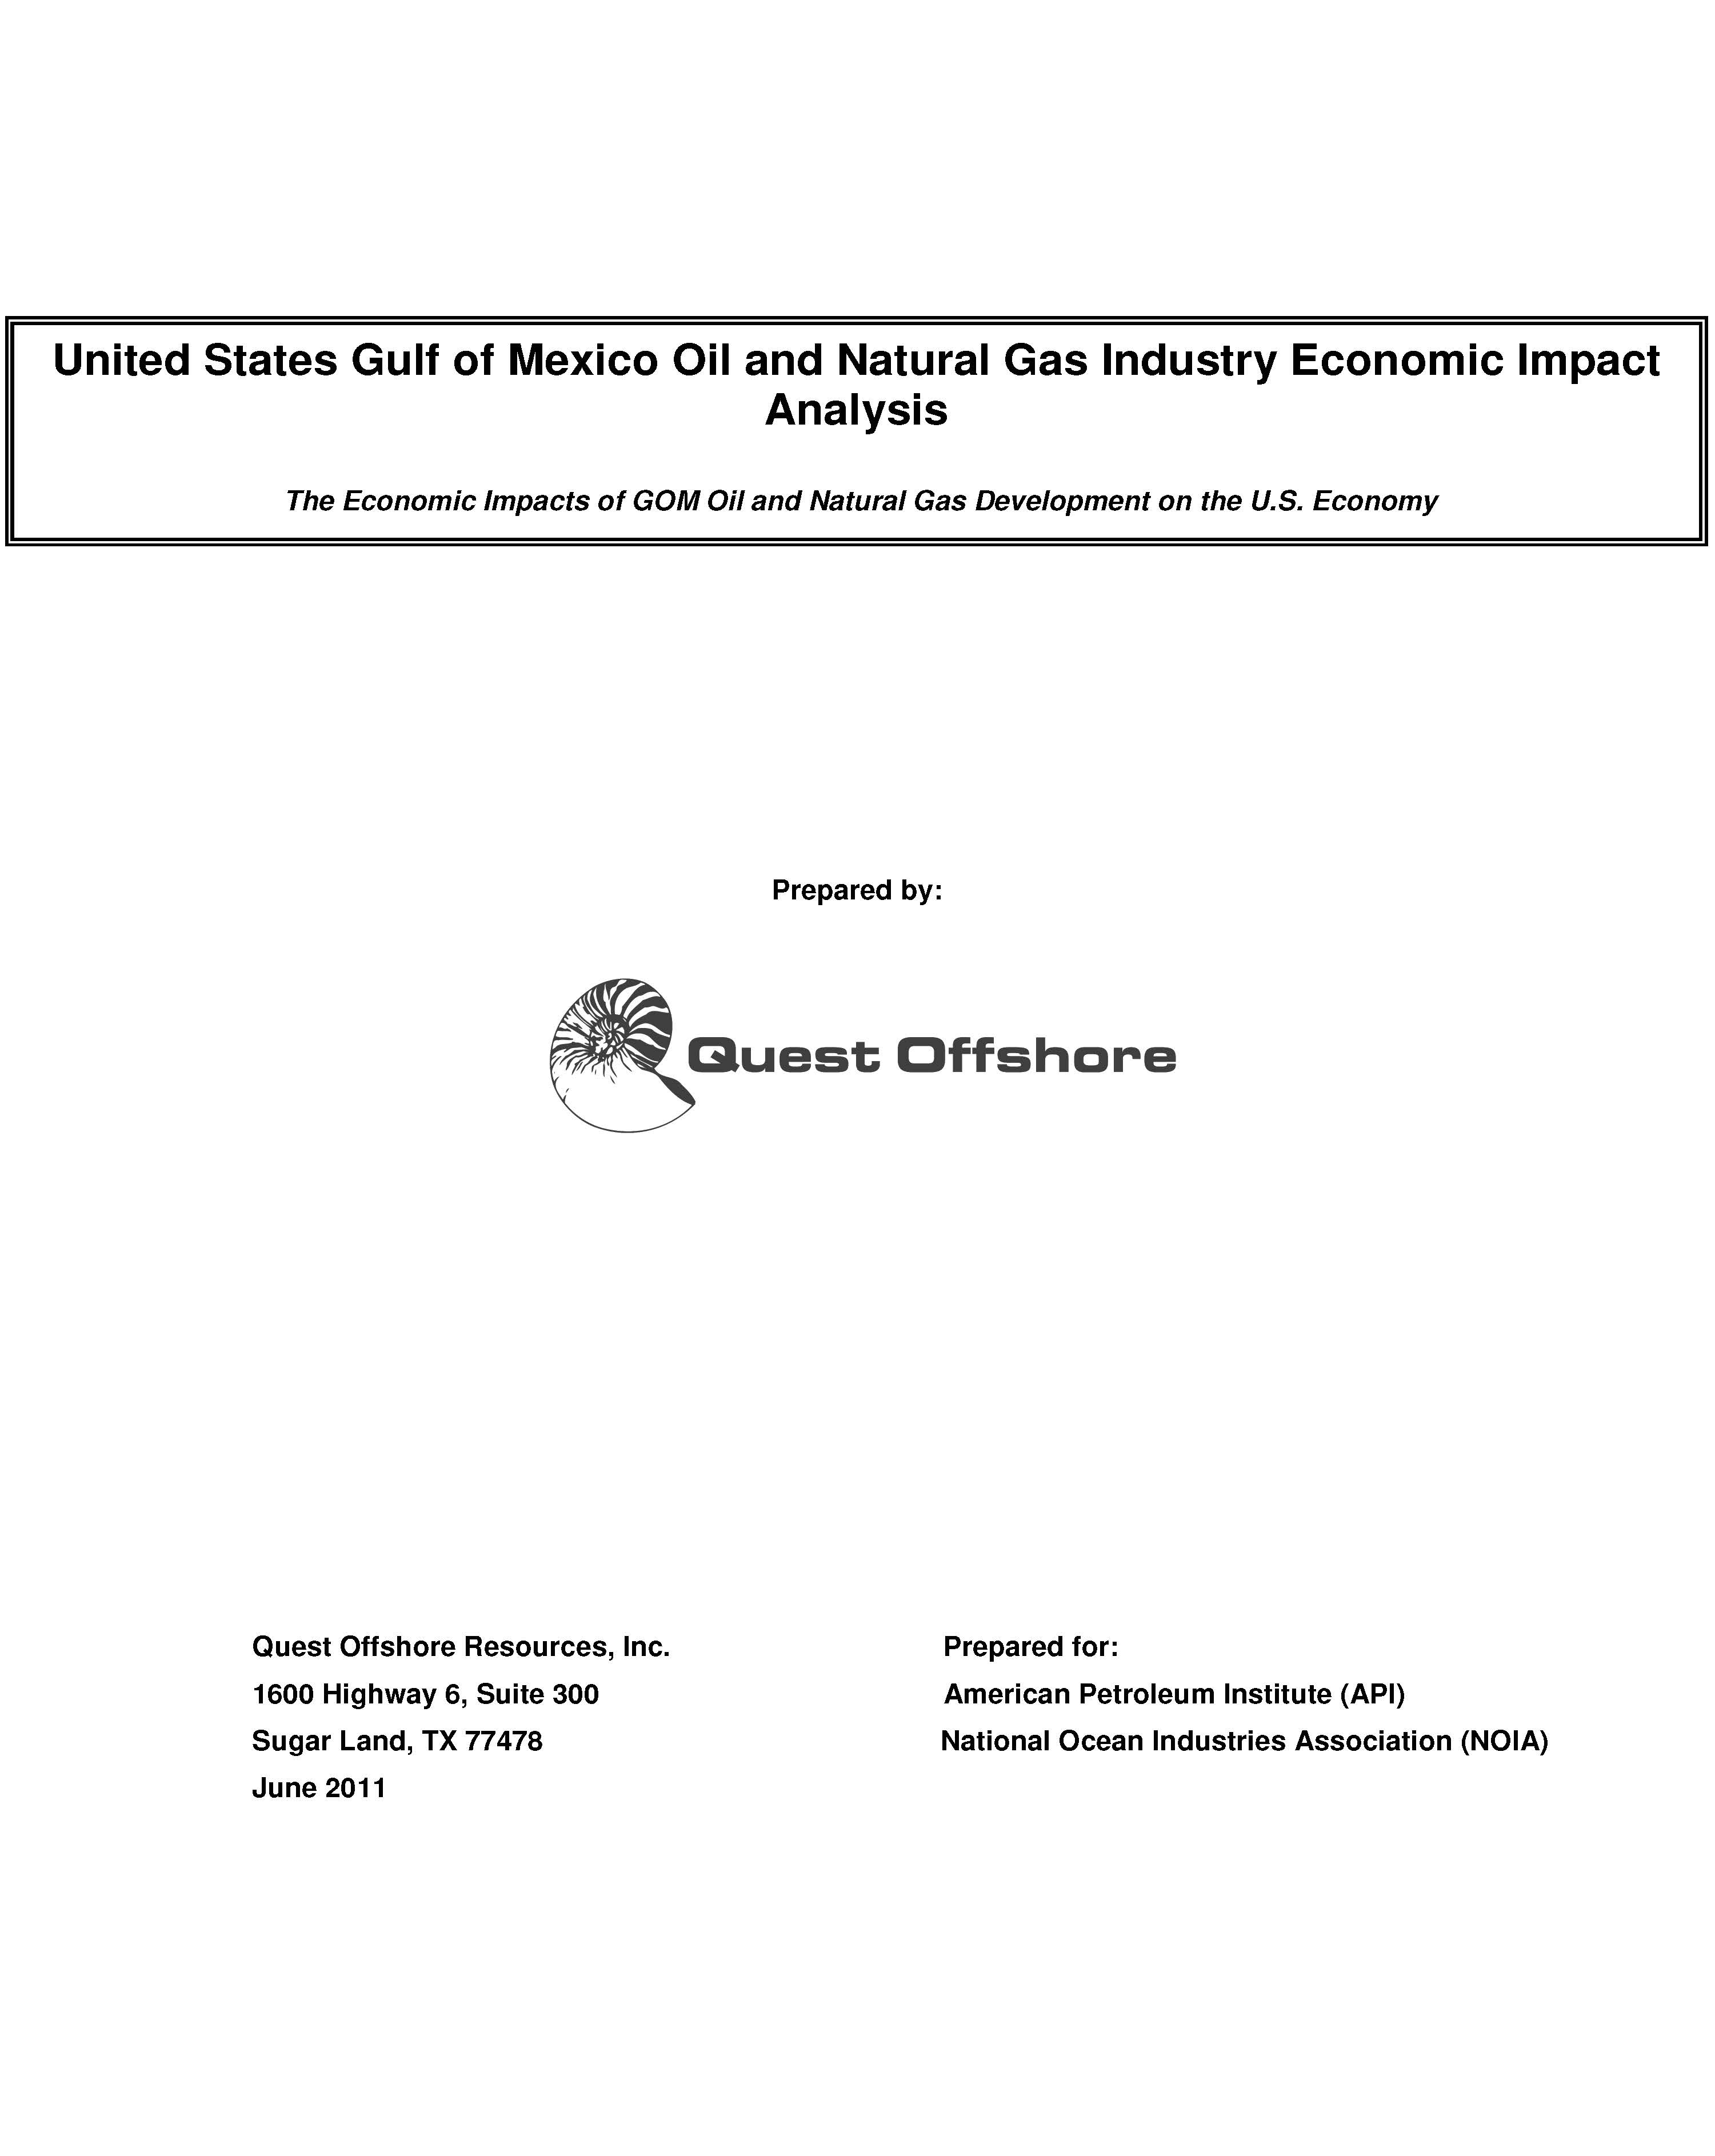 an analysis of the consequences of offshoring in the united states The united states economy is currently not looking very good over the past couple of months the economy has taken a turn for the worst and we could be headed into a recession in the coming months or years.